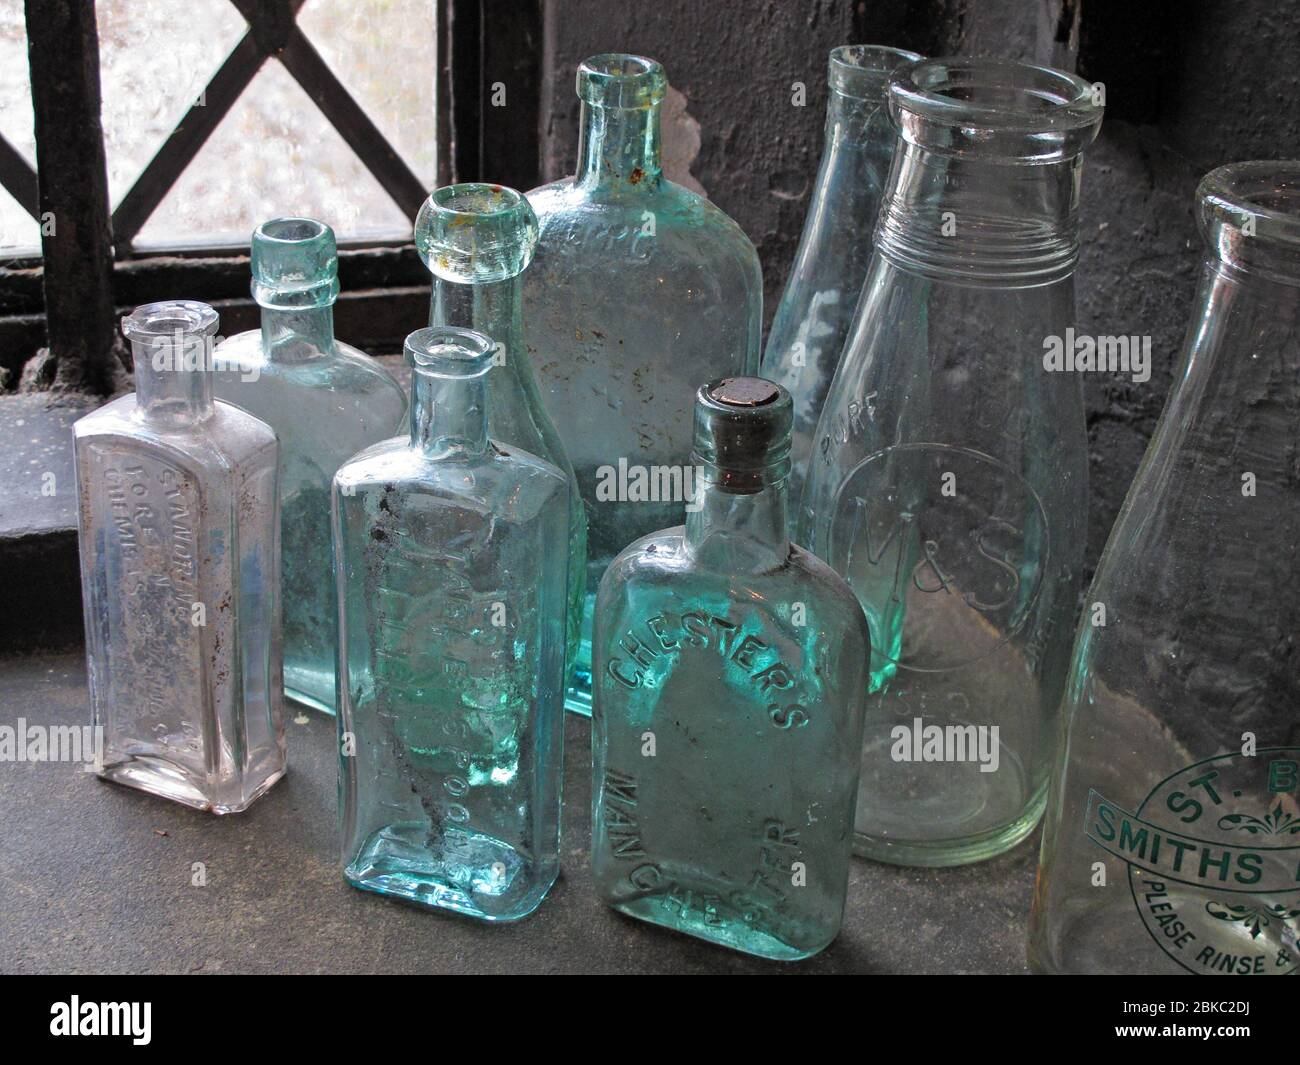 HotpixUK,GoTonySmith,cast iron,cork,hygienic,Antique Victorian Bottles,Antique Victorian,Antique,refuse,find,found,discarded,early recycling,recycling